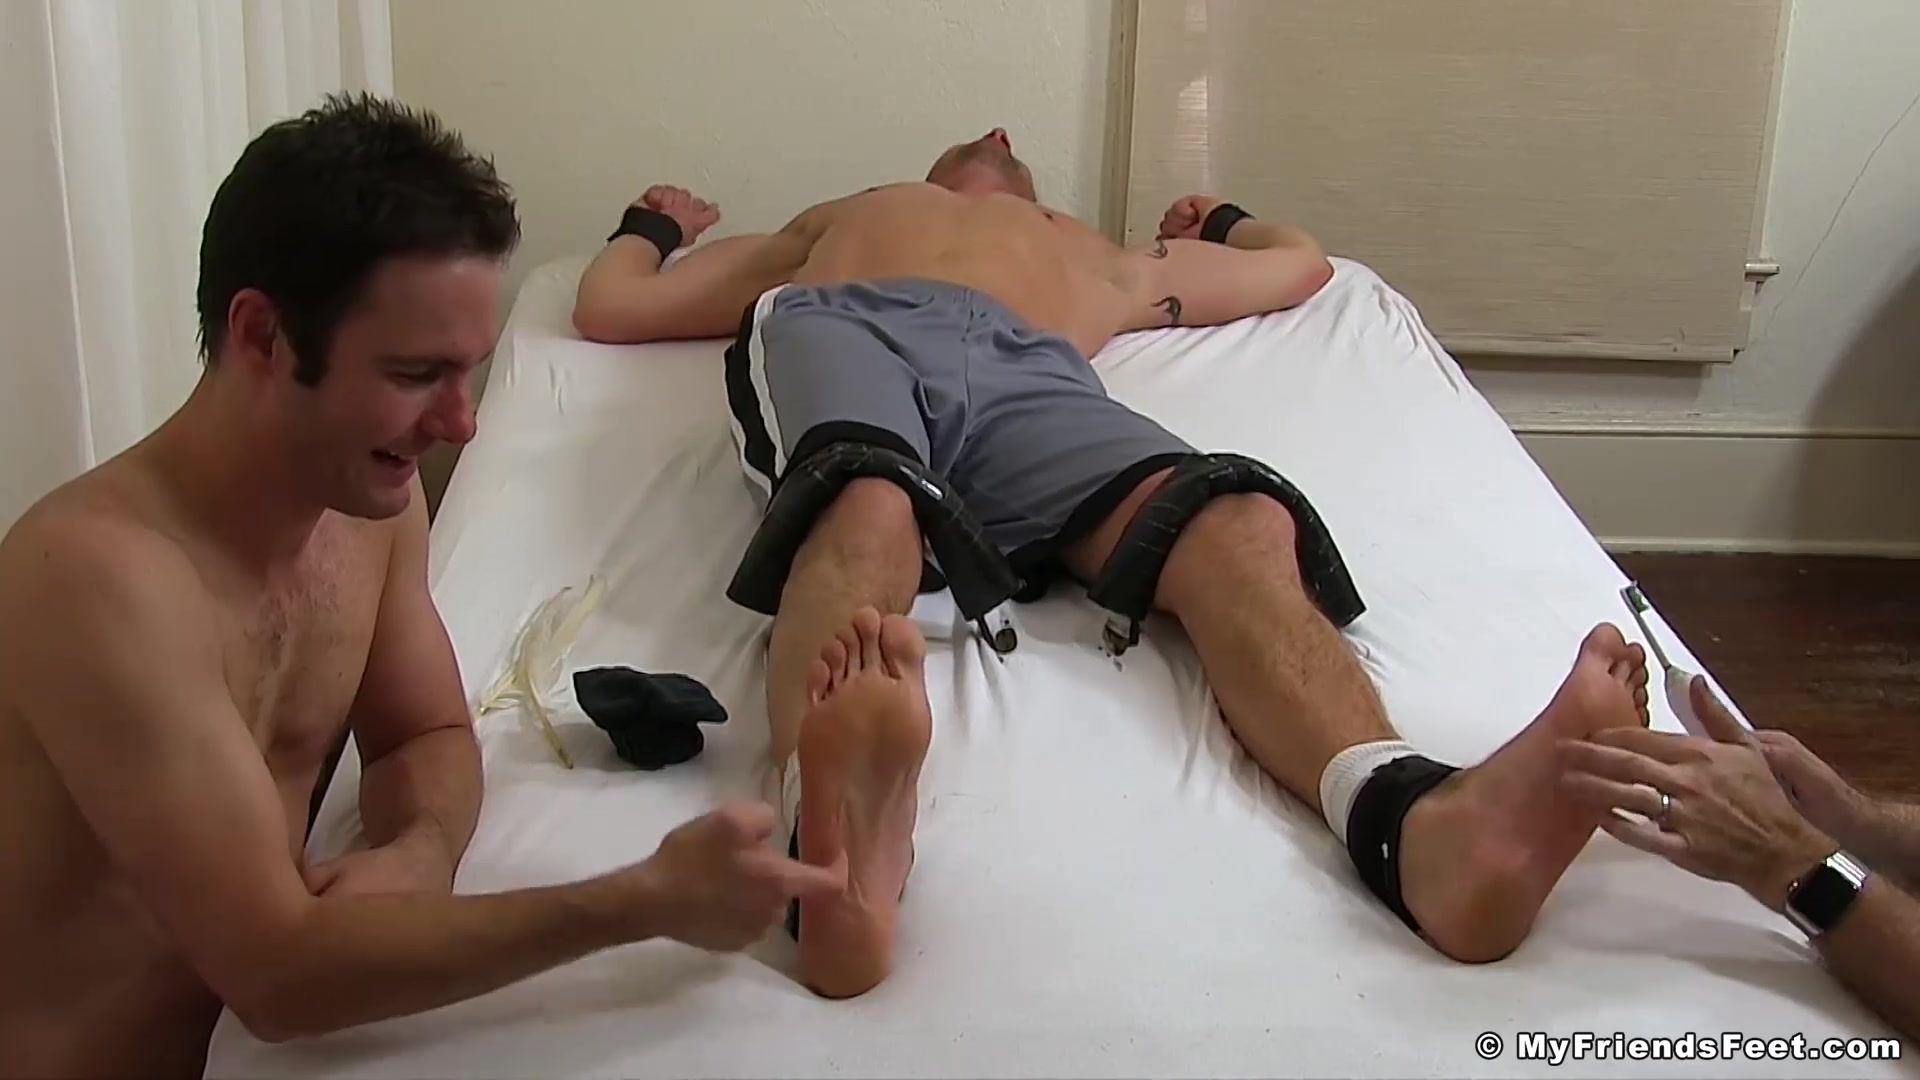 Sergey in Hot and sexy Sergey immobilized and tickled hard at home - MyFriendsFeet Christie stevens blowjob